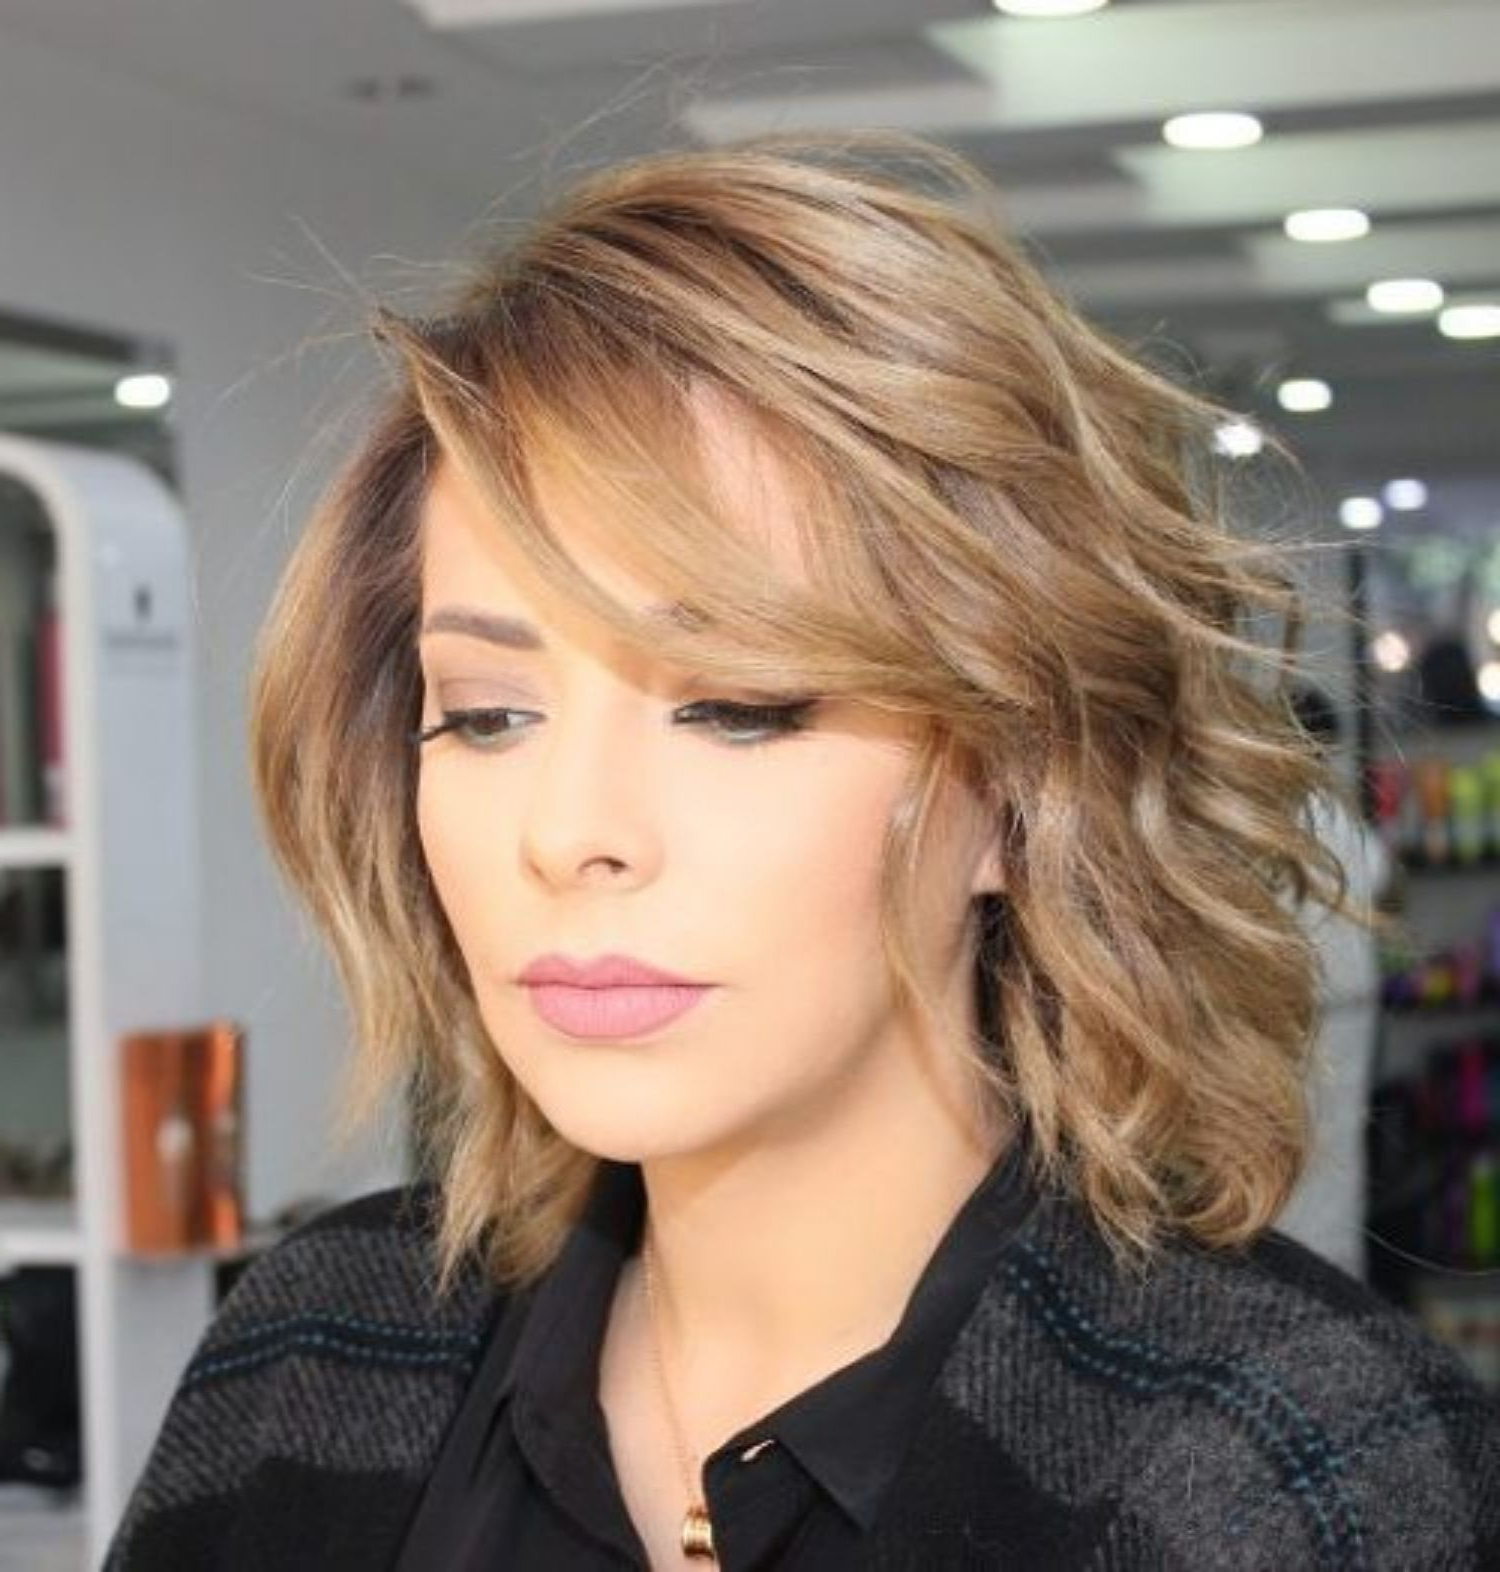 2018 Wispy Medium Haircuts With 70 Brightest Medium Layered Haircuts To Light You Up In (View 15 of 20)